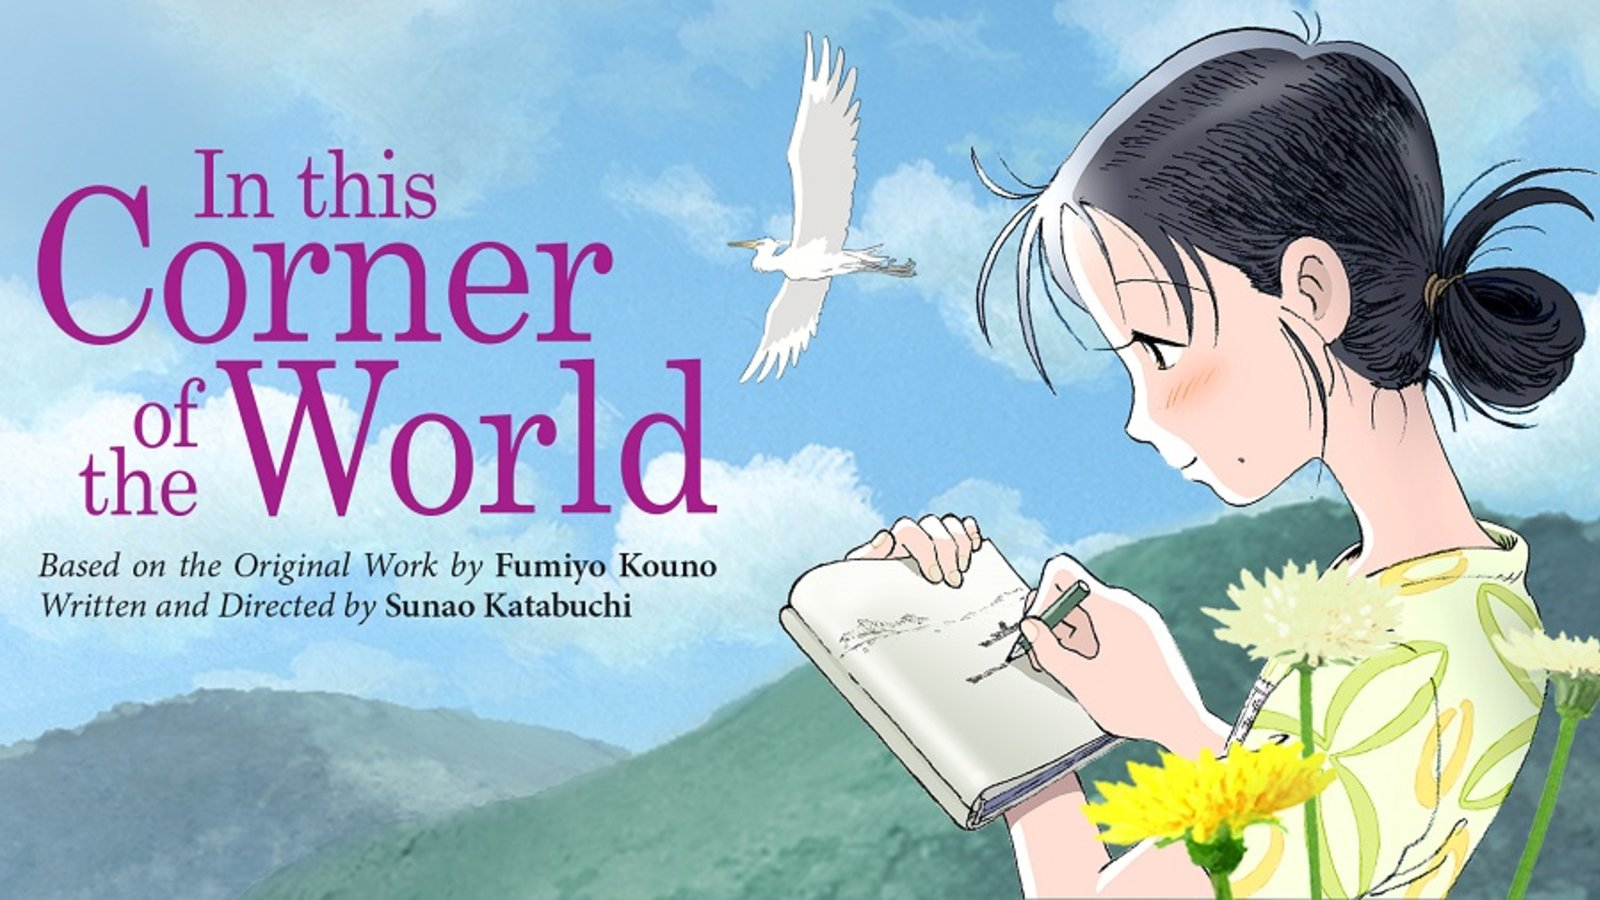 In This Corner of the World - Kono sekai no katasumi ni